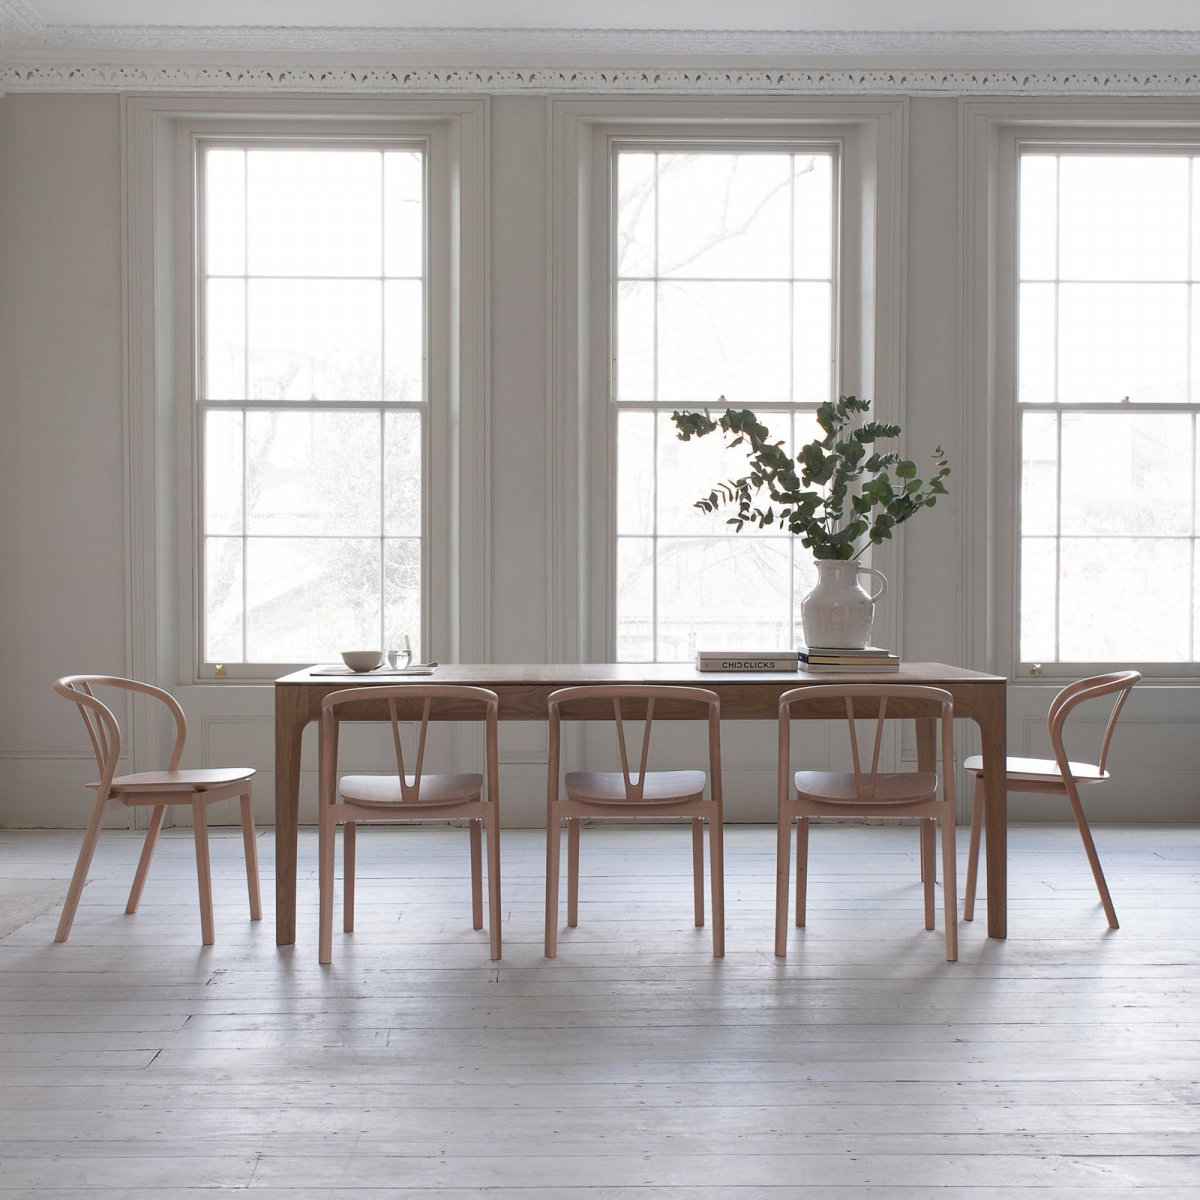 Flow Chairs and Romana Large Dining Table.